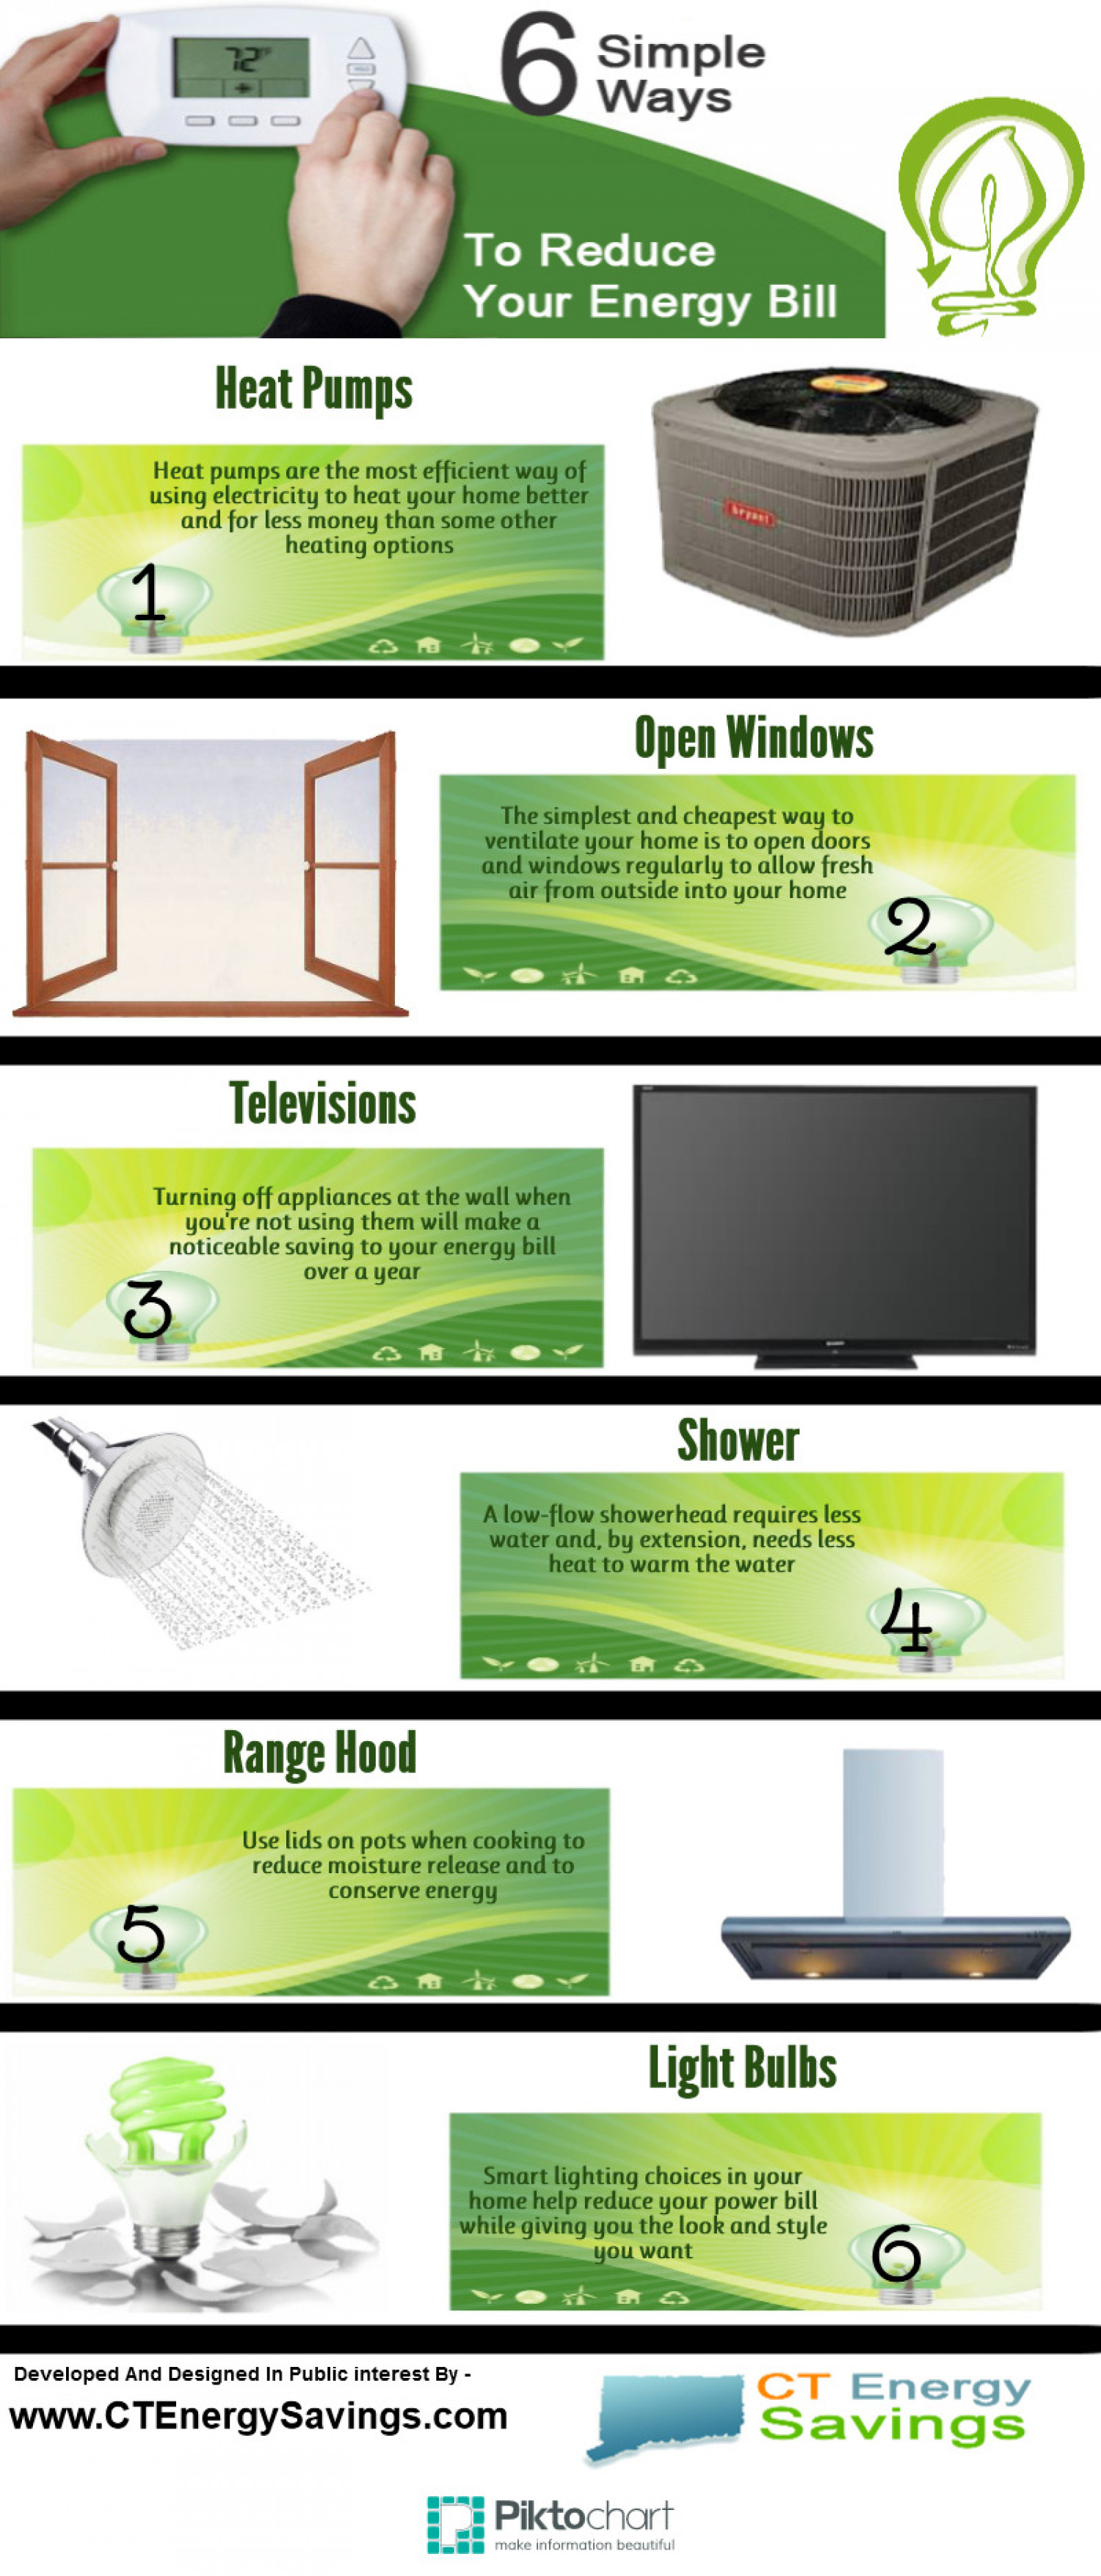 6 Simple Ways To Reduce Your Energy Bill Infographic